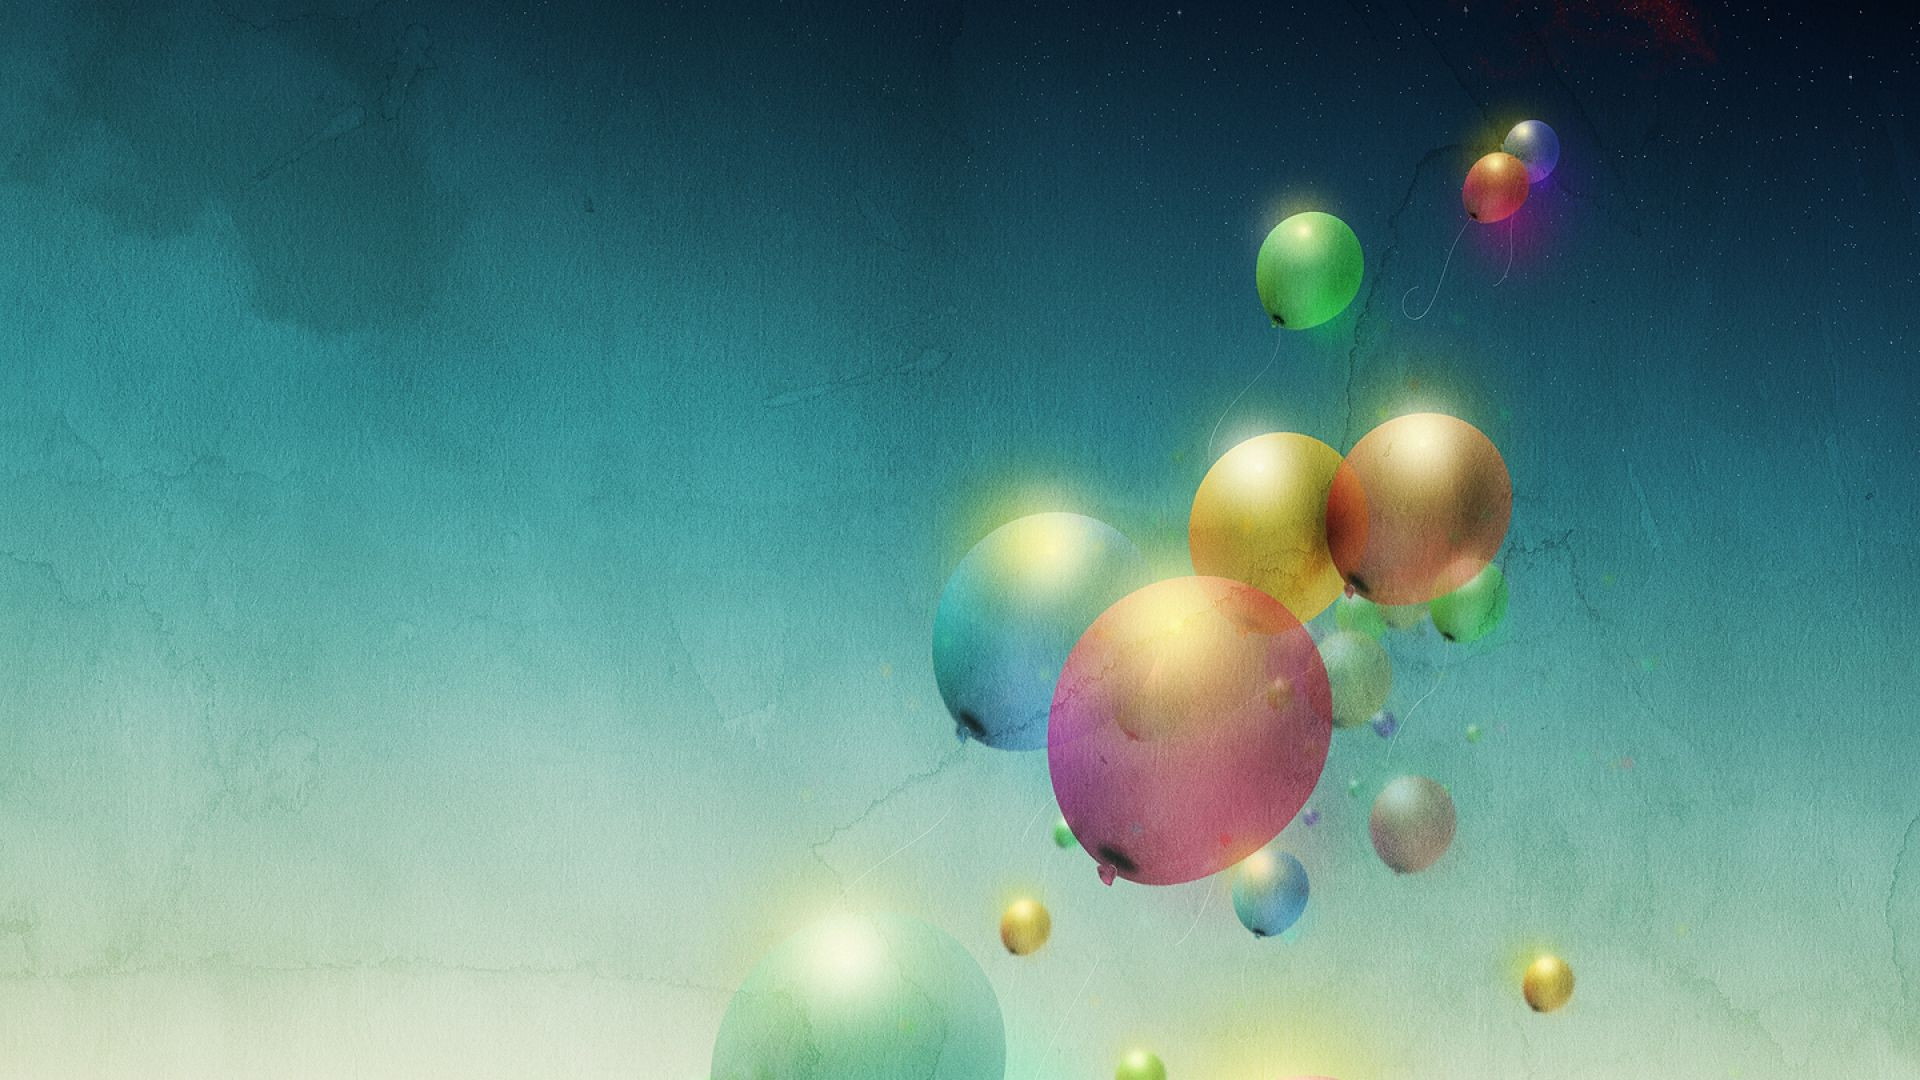 Pin by Beckey Douglas on balloons Balloon background